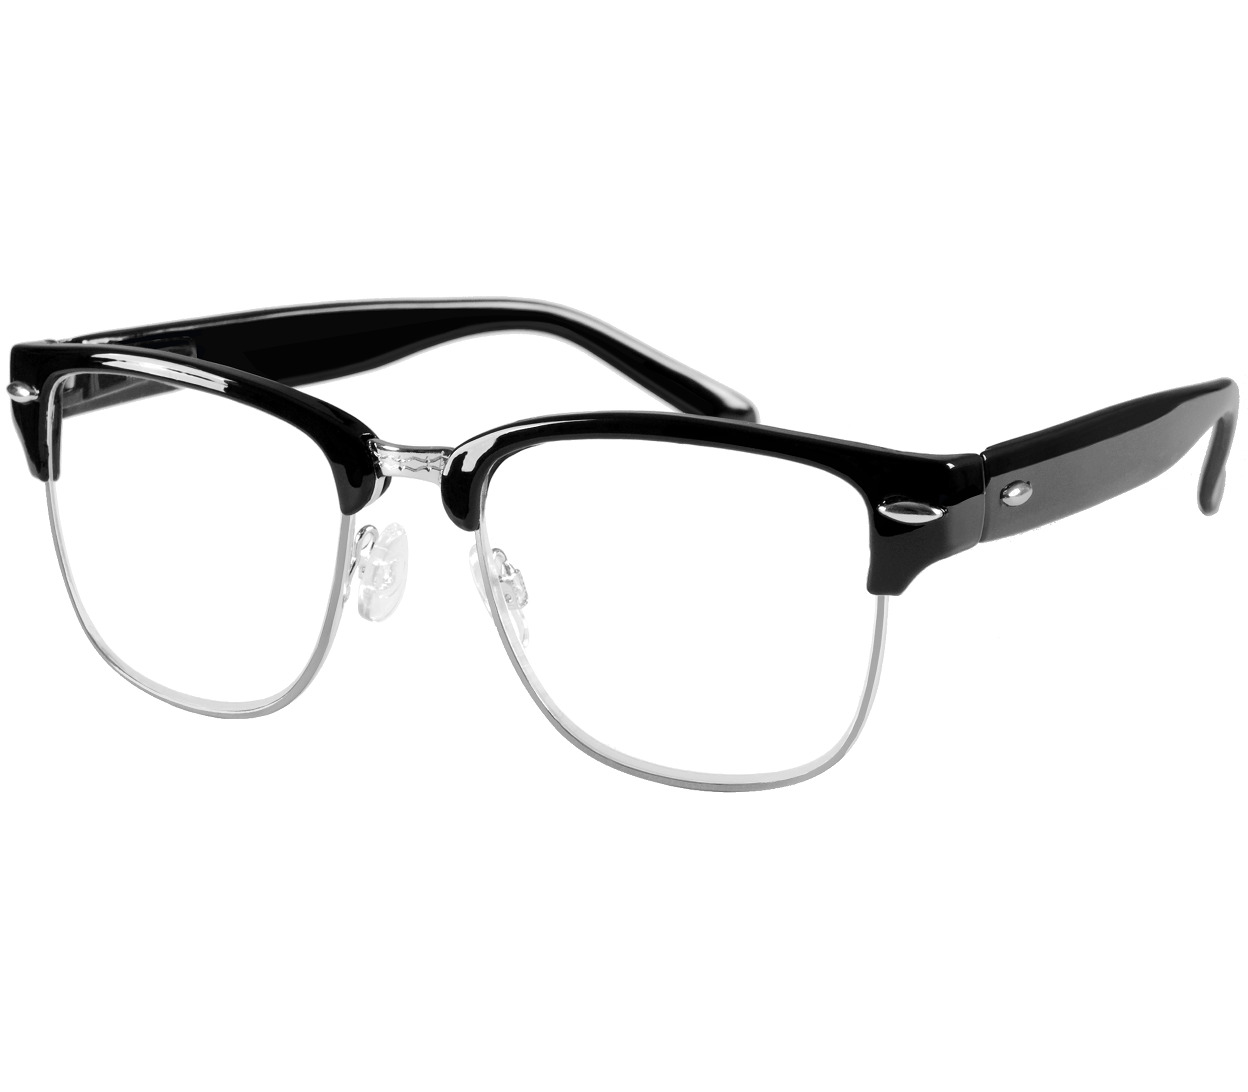 Main Image (Angle) - Harvard (Black) Retro Reading Glasses